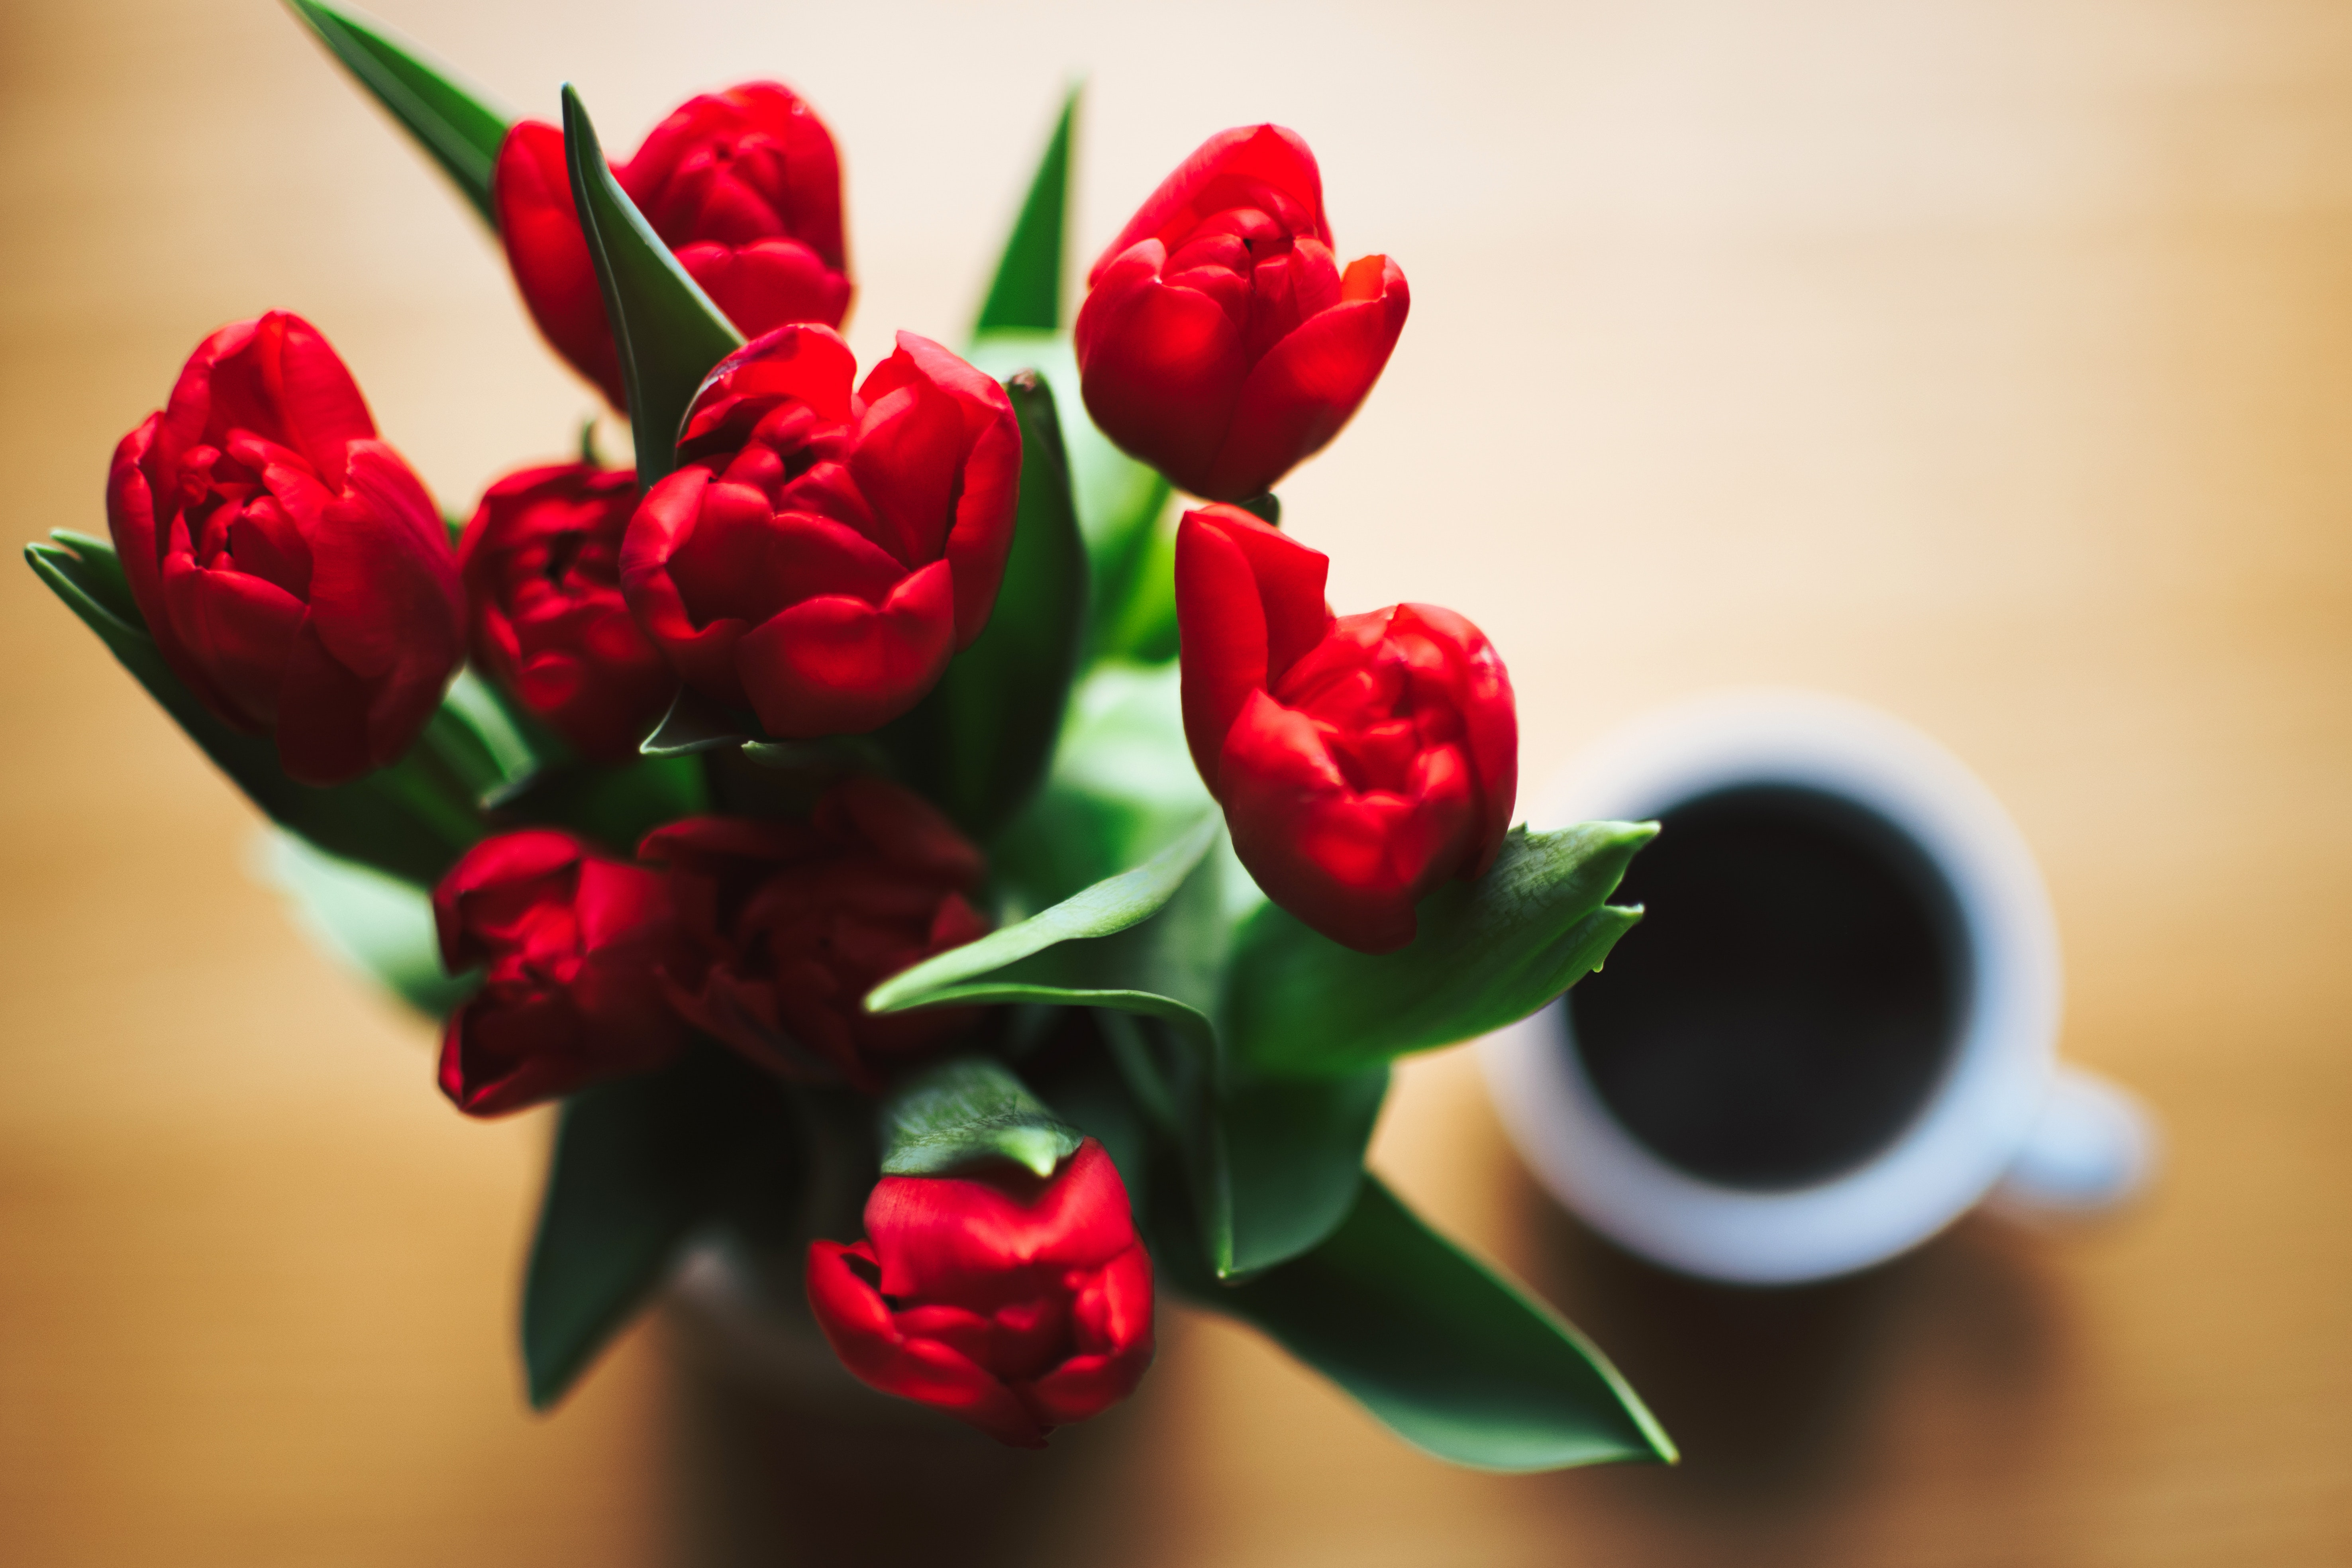 Red Tulip Bouquet Beside White Ceramic Cup Full of Black Liquid, Colors, Tulips, Top view, Table, HQ Photo